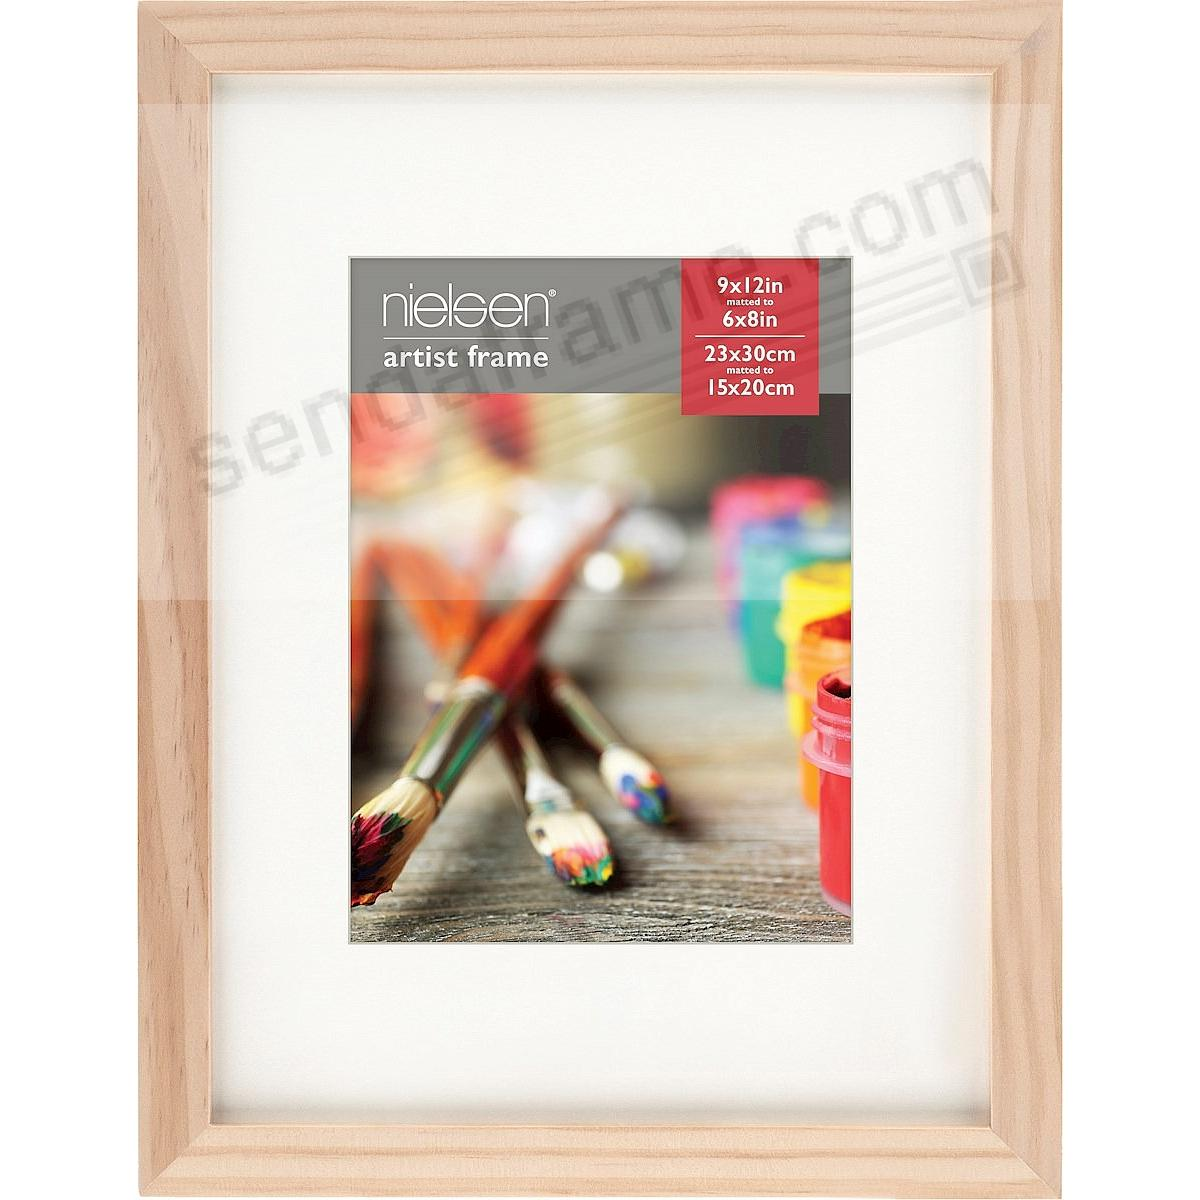 Ash Natural GALLERY-CANVAS DEPTH matted wood frame 9x12/6x8 by Nielsen-Bainbridge®